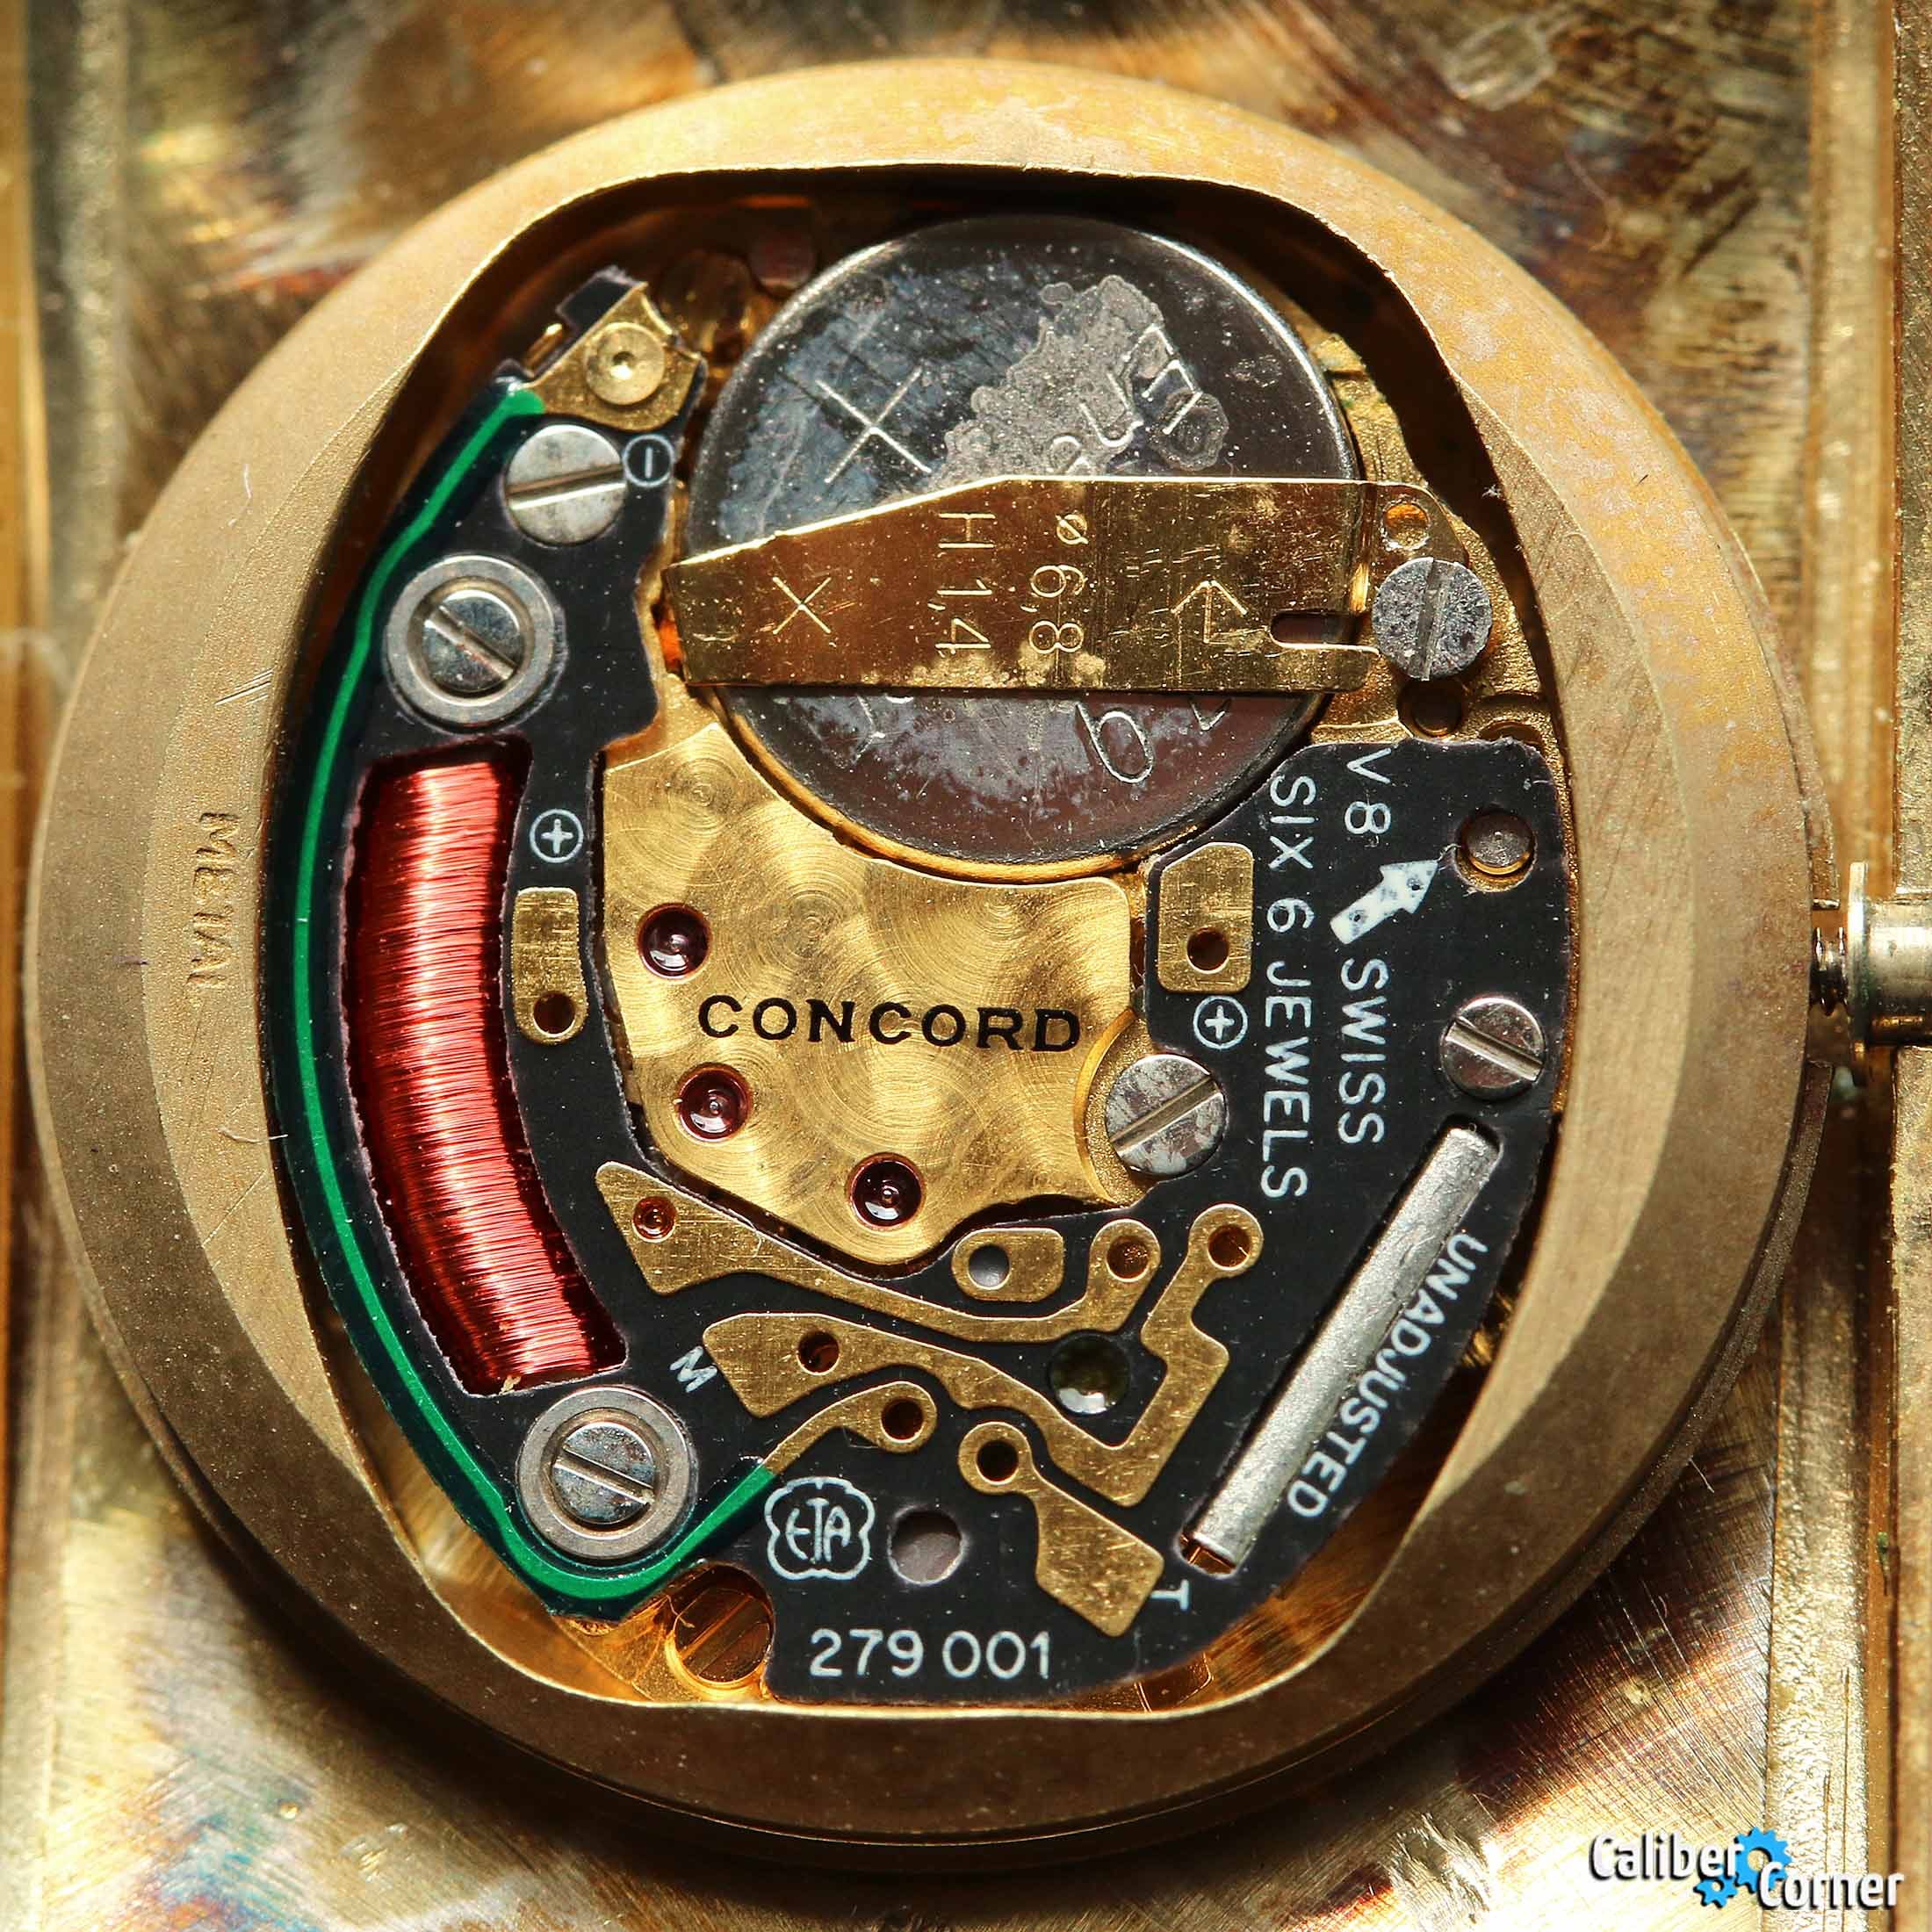 ETA caliber 279.001 quartz movement